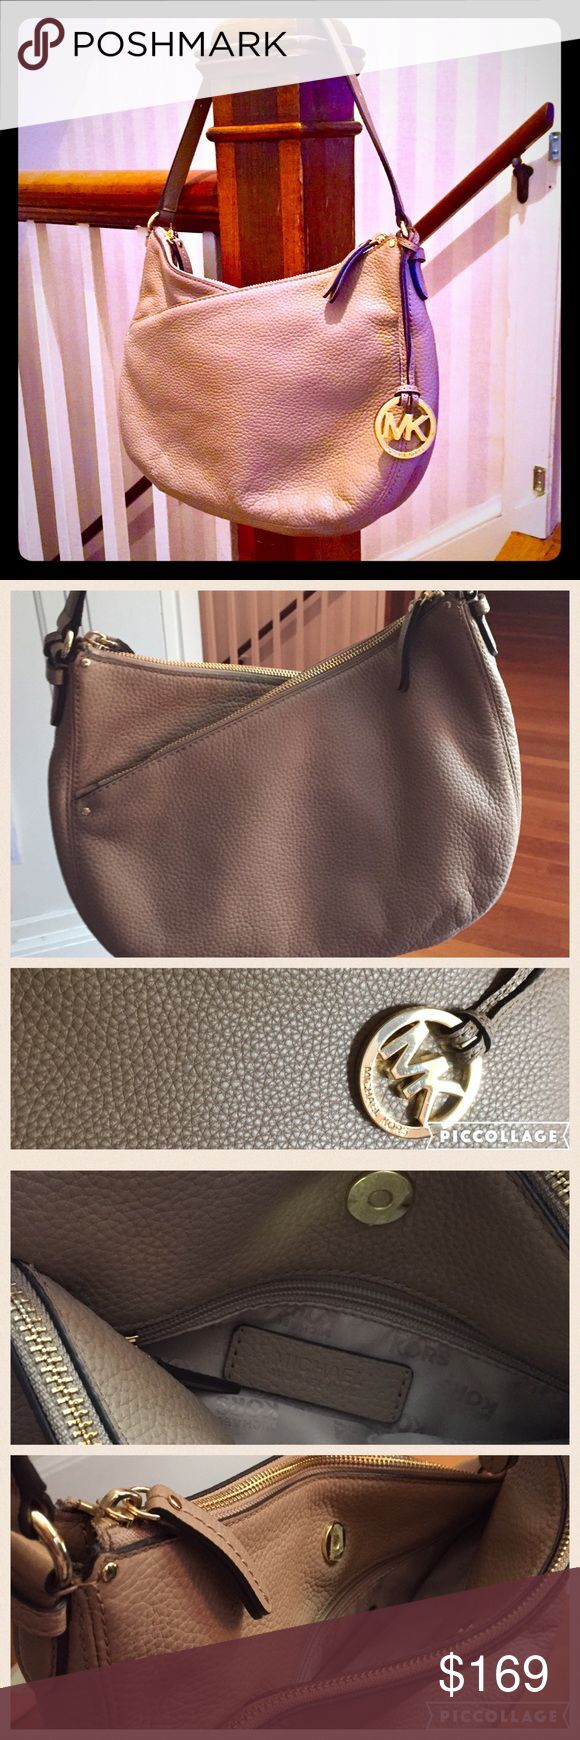 "Michael Kors Lea Convertible Shoulder Bag Beautiful soft leather in a dark nude/blush sort of color by Michael Kors, with a great angled double zipper leading to two separate compartments. The two compartments separate via magnetic snap to reveal an additional middle compartment with a small interior zip pocket. The attached strap has a 9"" drop, and a longer adjustable/detachable strap is included for crossbody wear up to 21"". Hard to find this bag at a low price! 🙌 Michael Kors Bags…"